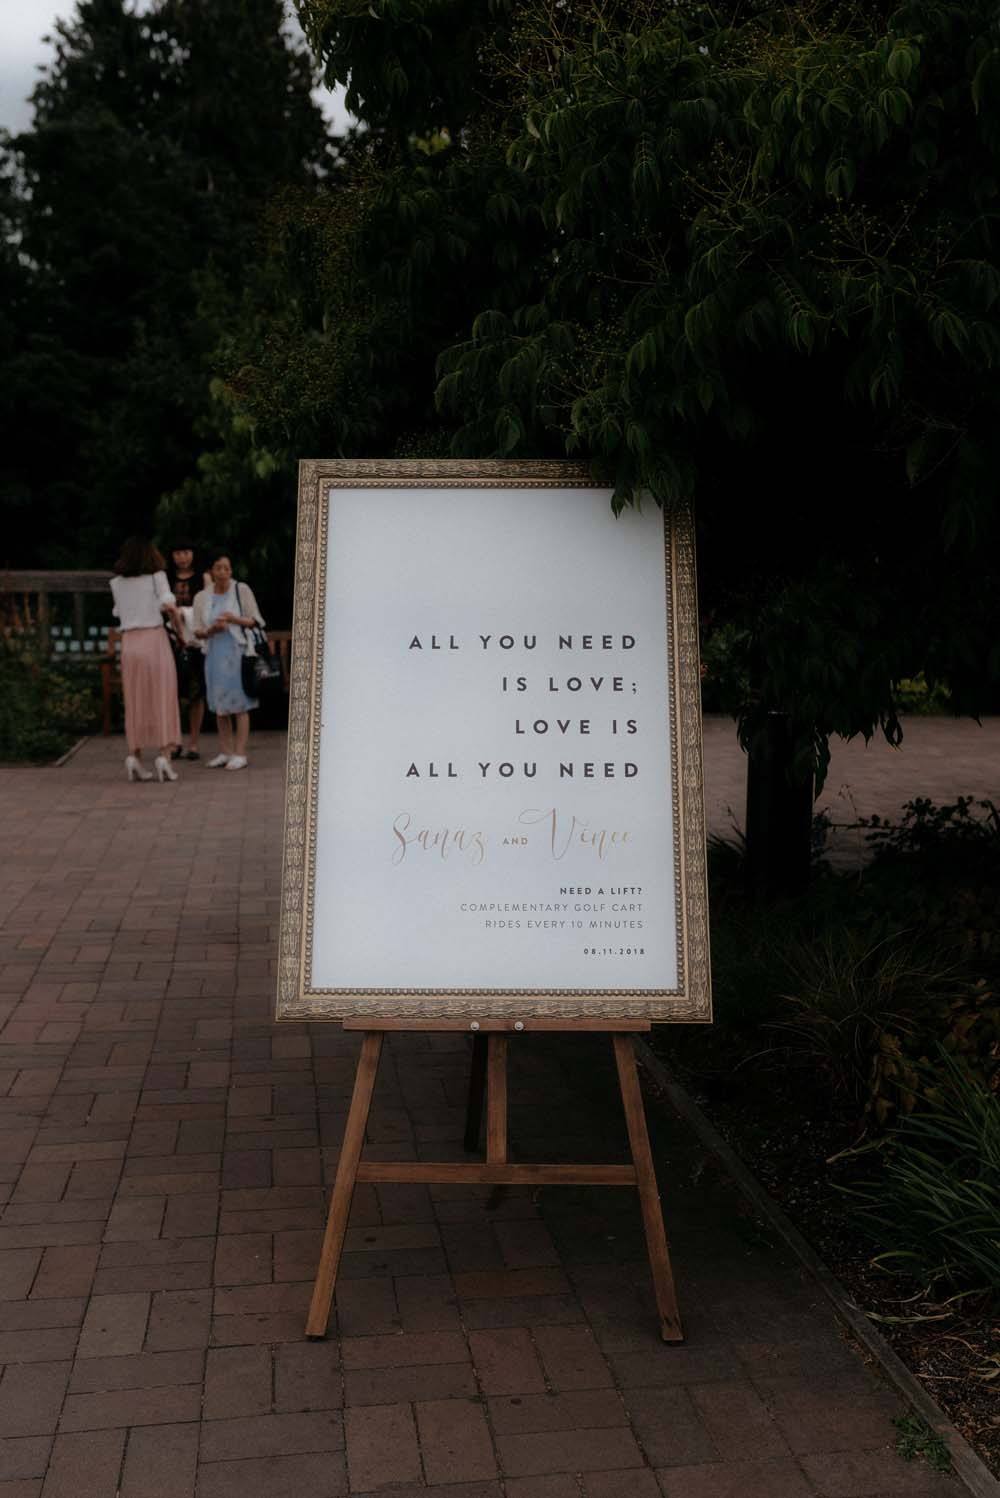 A Multicultural Wedding At The UBC Botanical Garden in Vancouver - signage